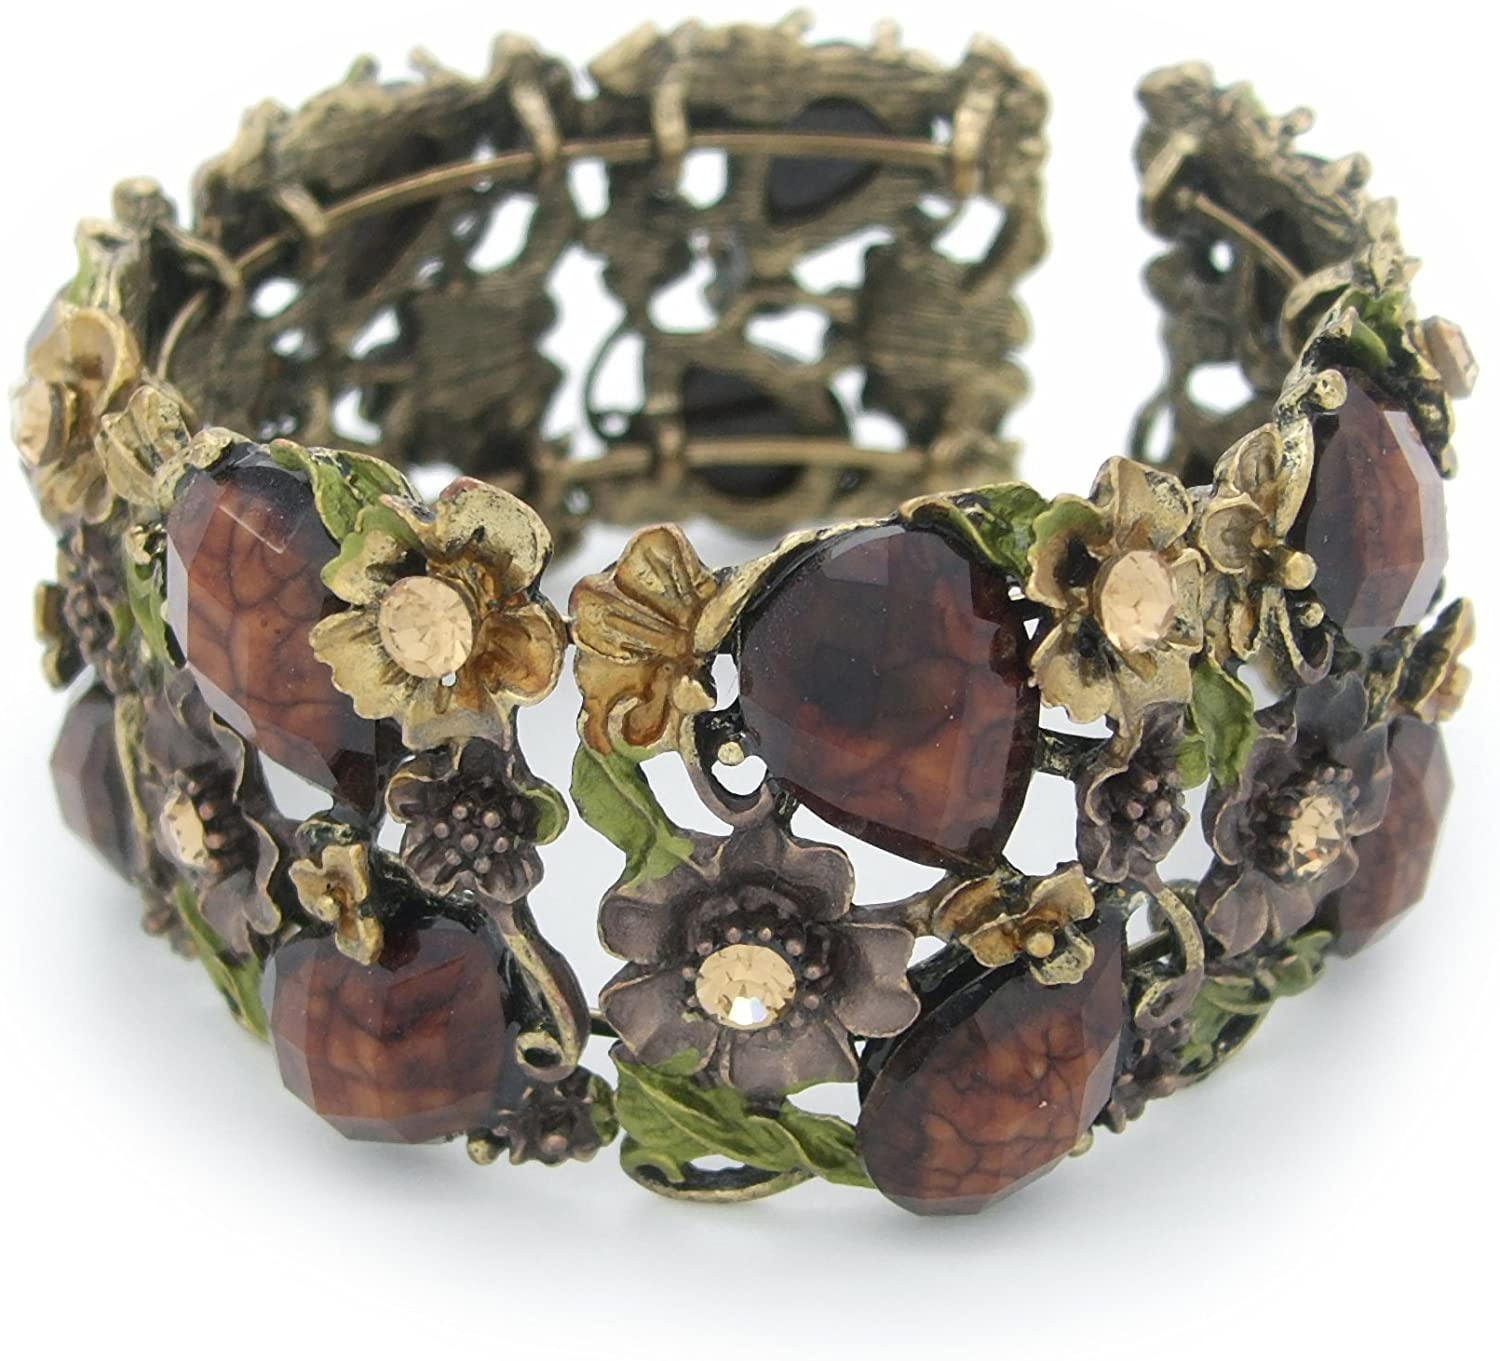 Beautiful Antique Style Burnished Gold and Brown Tone Bangle Cuff Bracelet